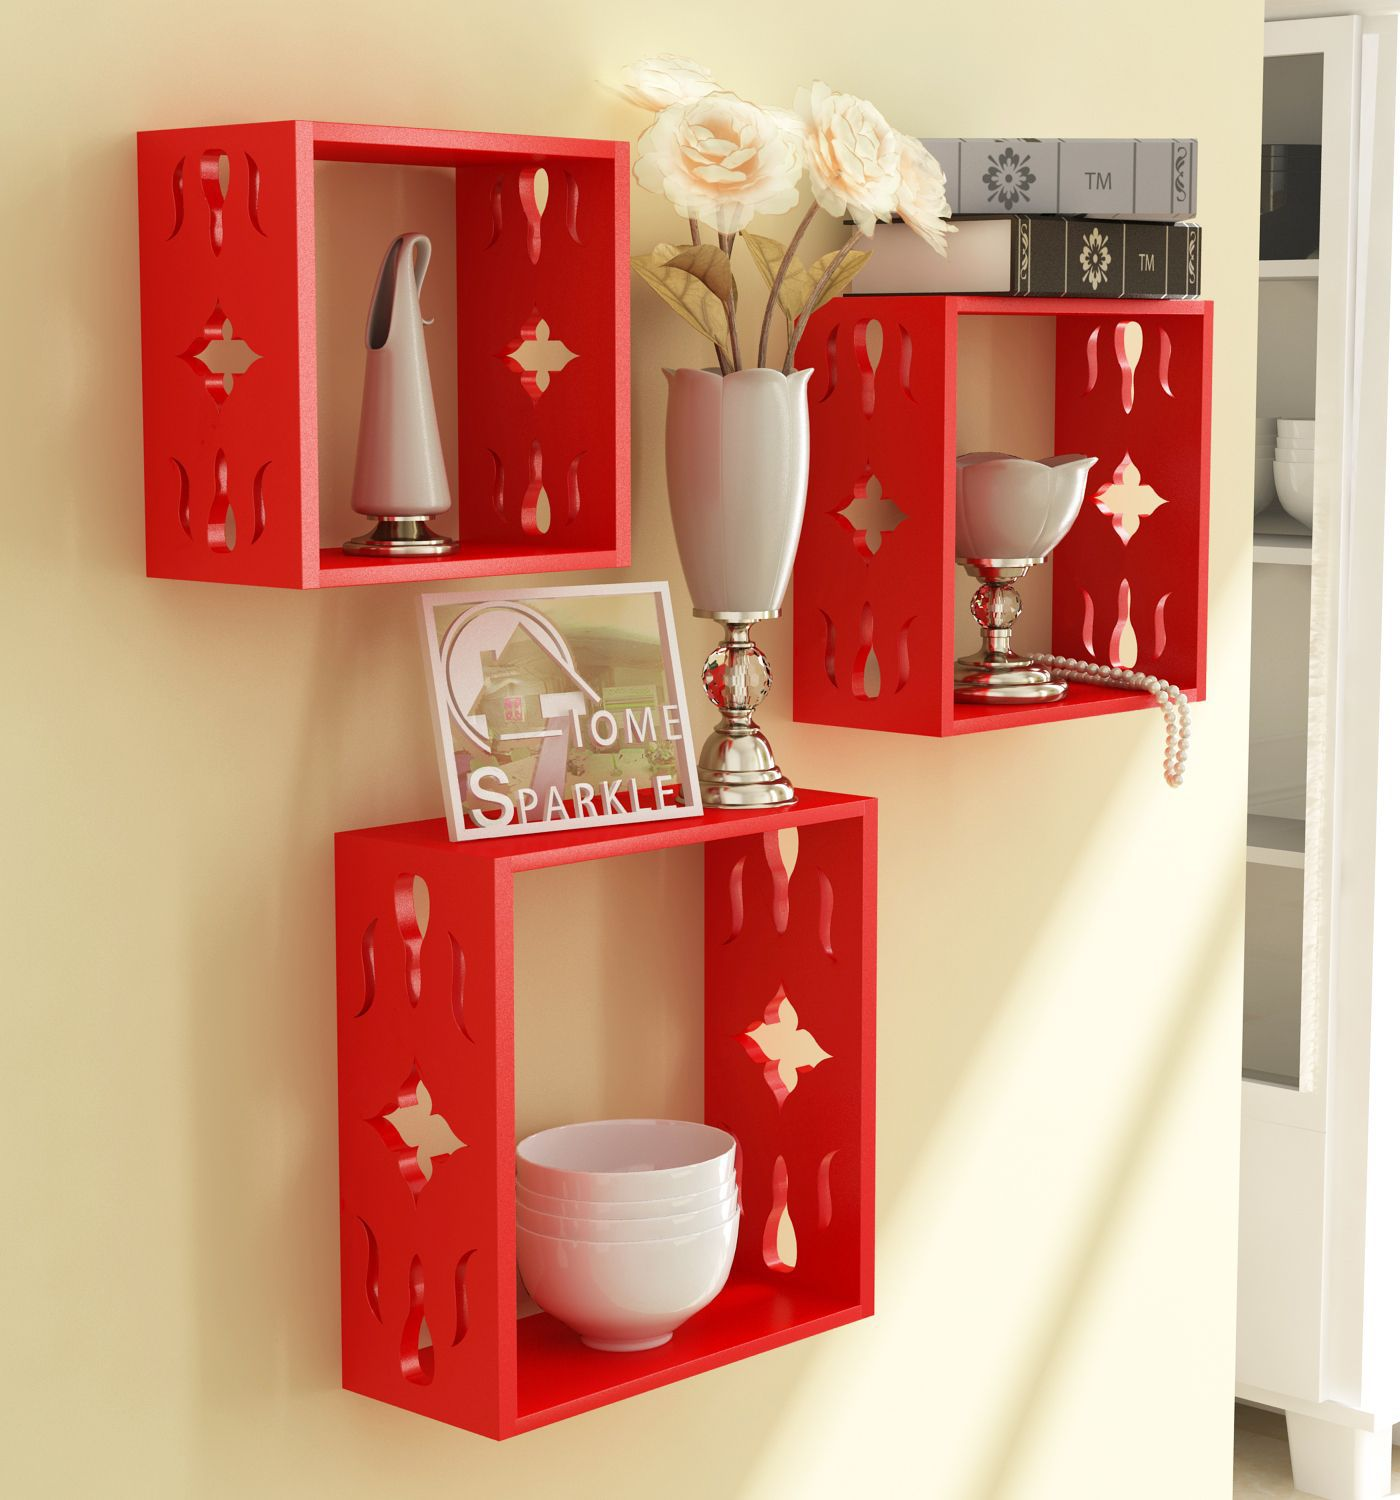 Home Sparkle MDF 3 Cube Shelves For Wall Décor -Suitable For Living Room/Bed Room (Designed By Craftsman)